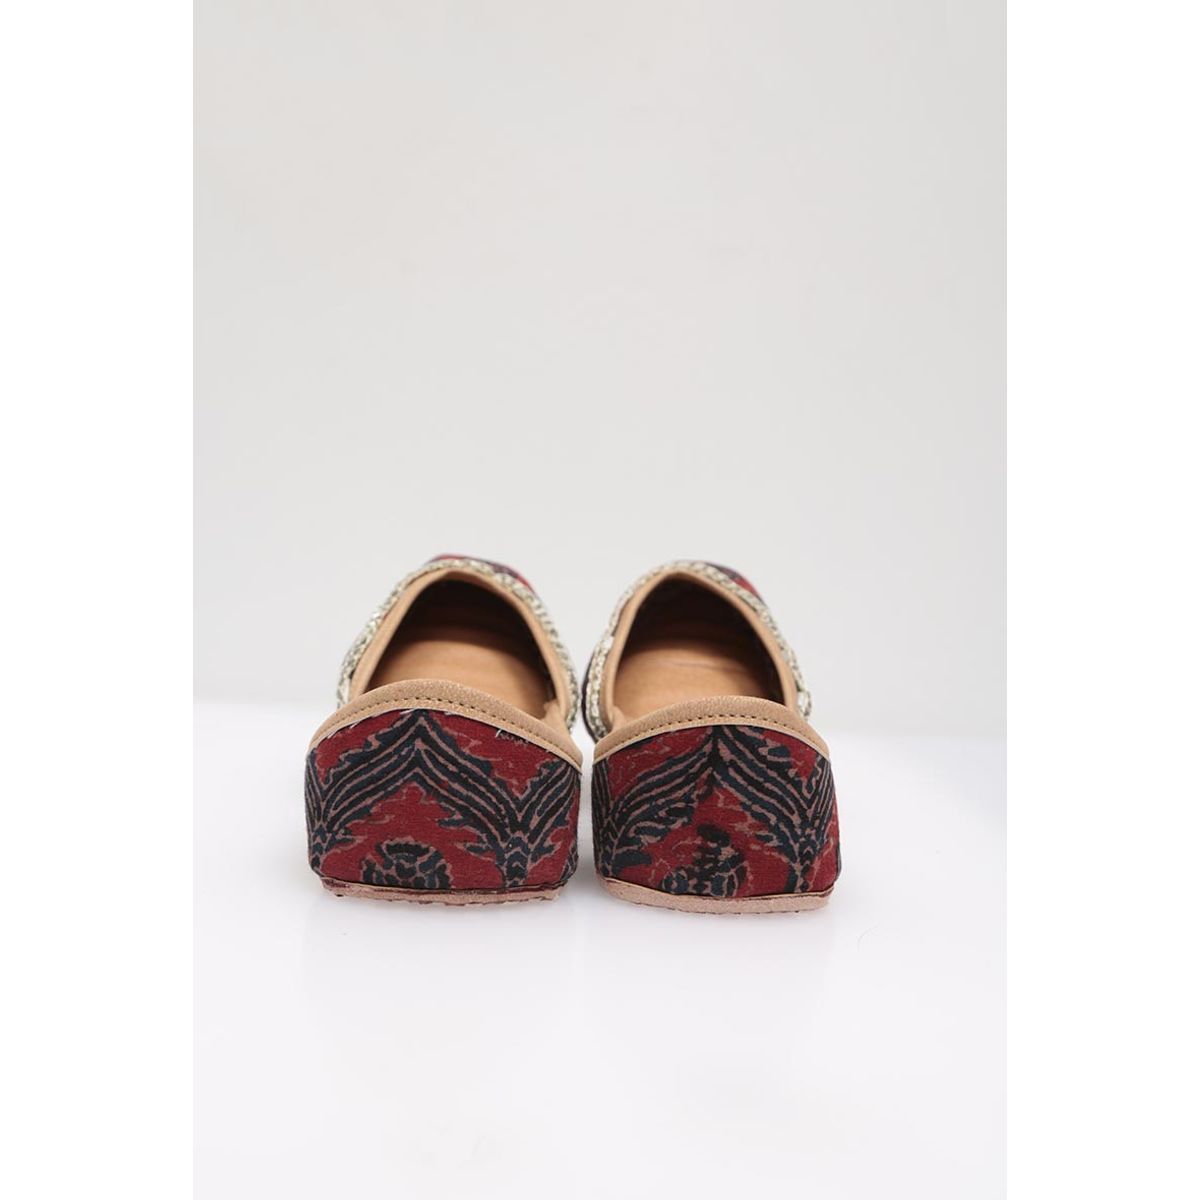 Maroon  blue Ajrakh Printed leather jutti